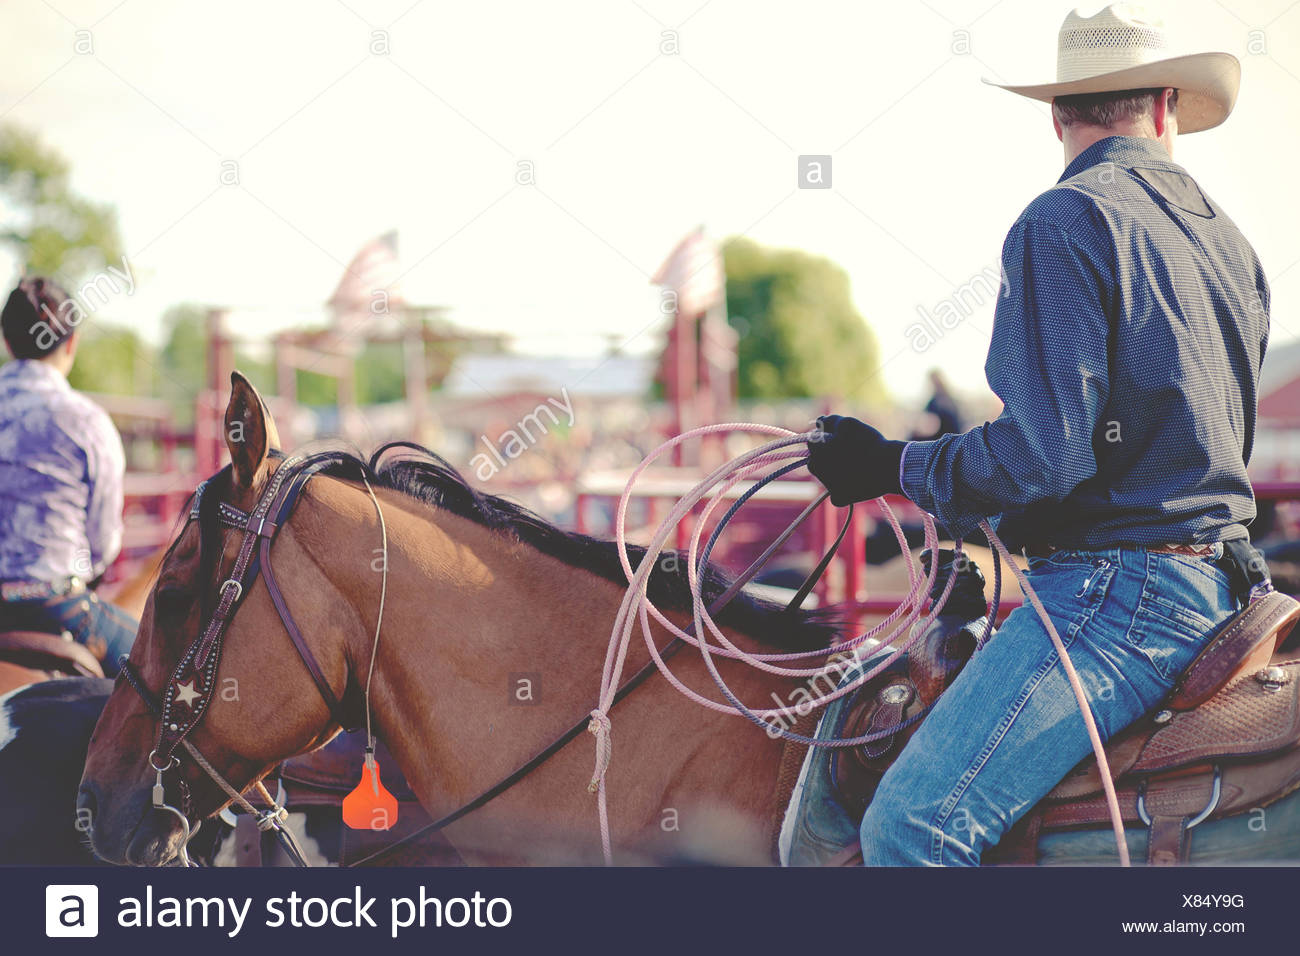 USA, Connecticut, Cowboy riding horse at rodeo - Stock Image